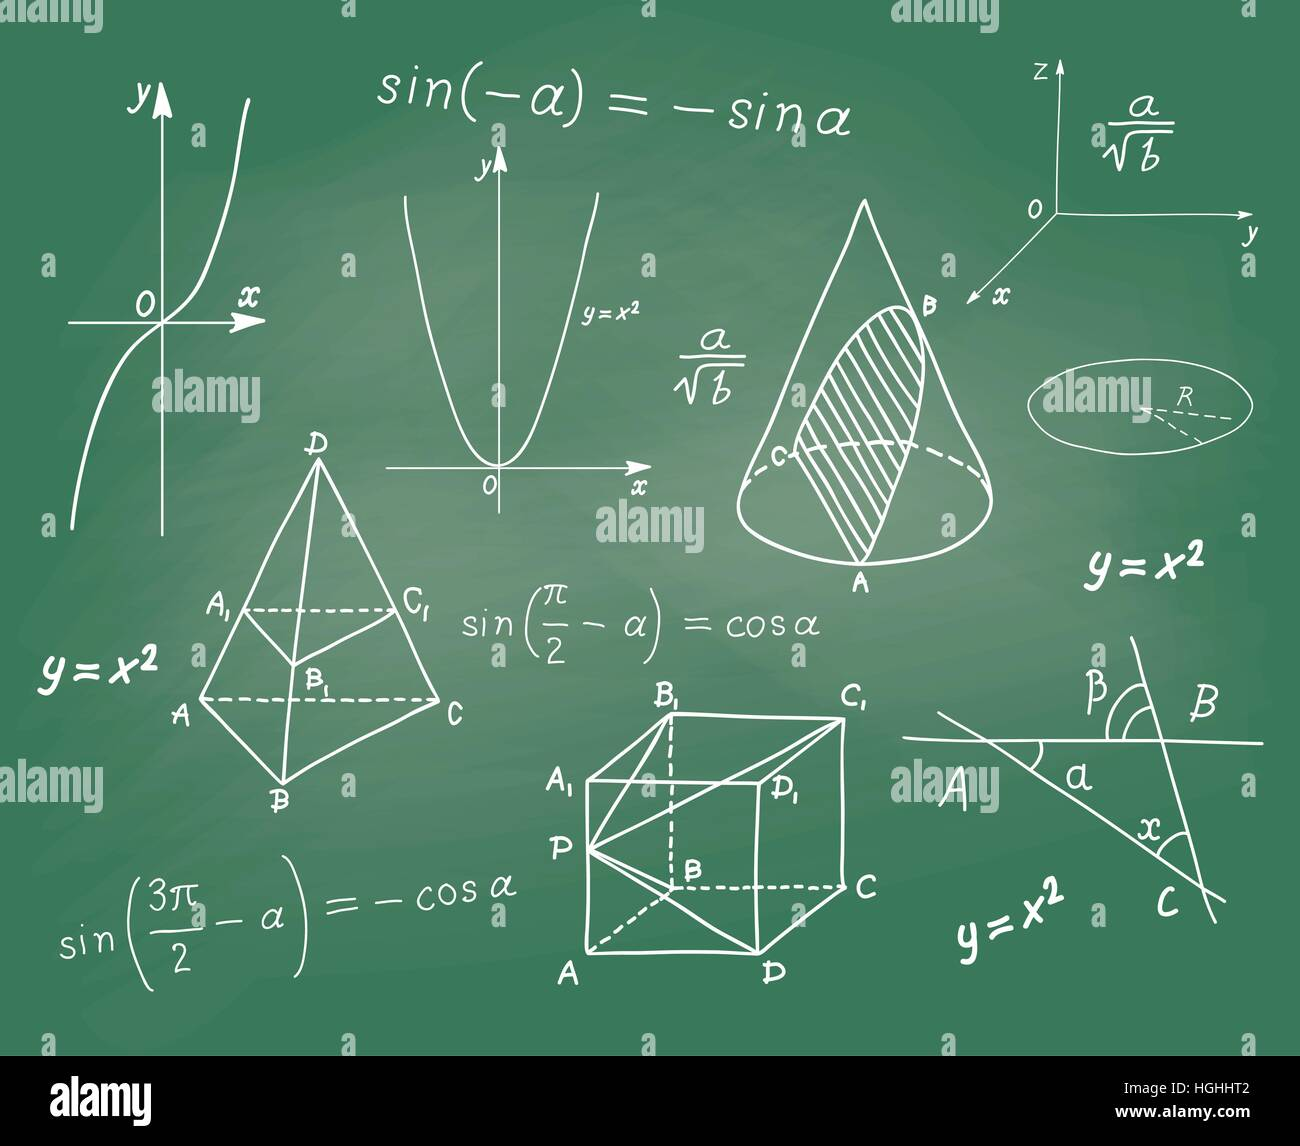 Mathematics - geometric shapes and expressions sketches on school board - Stock Image